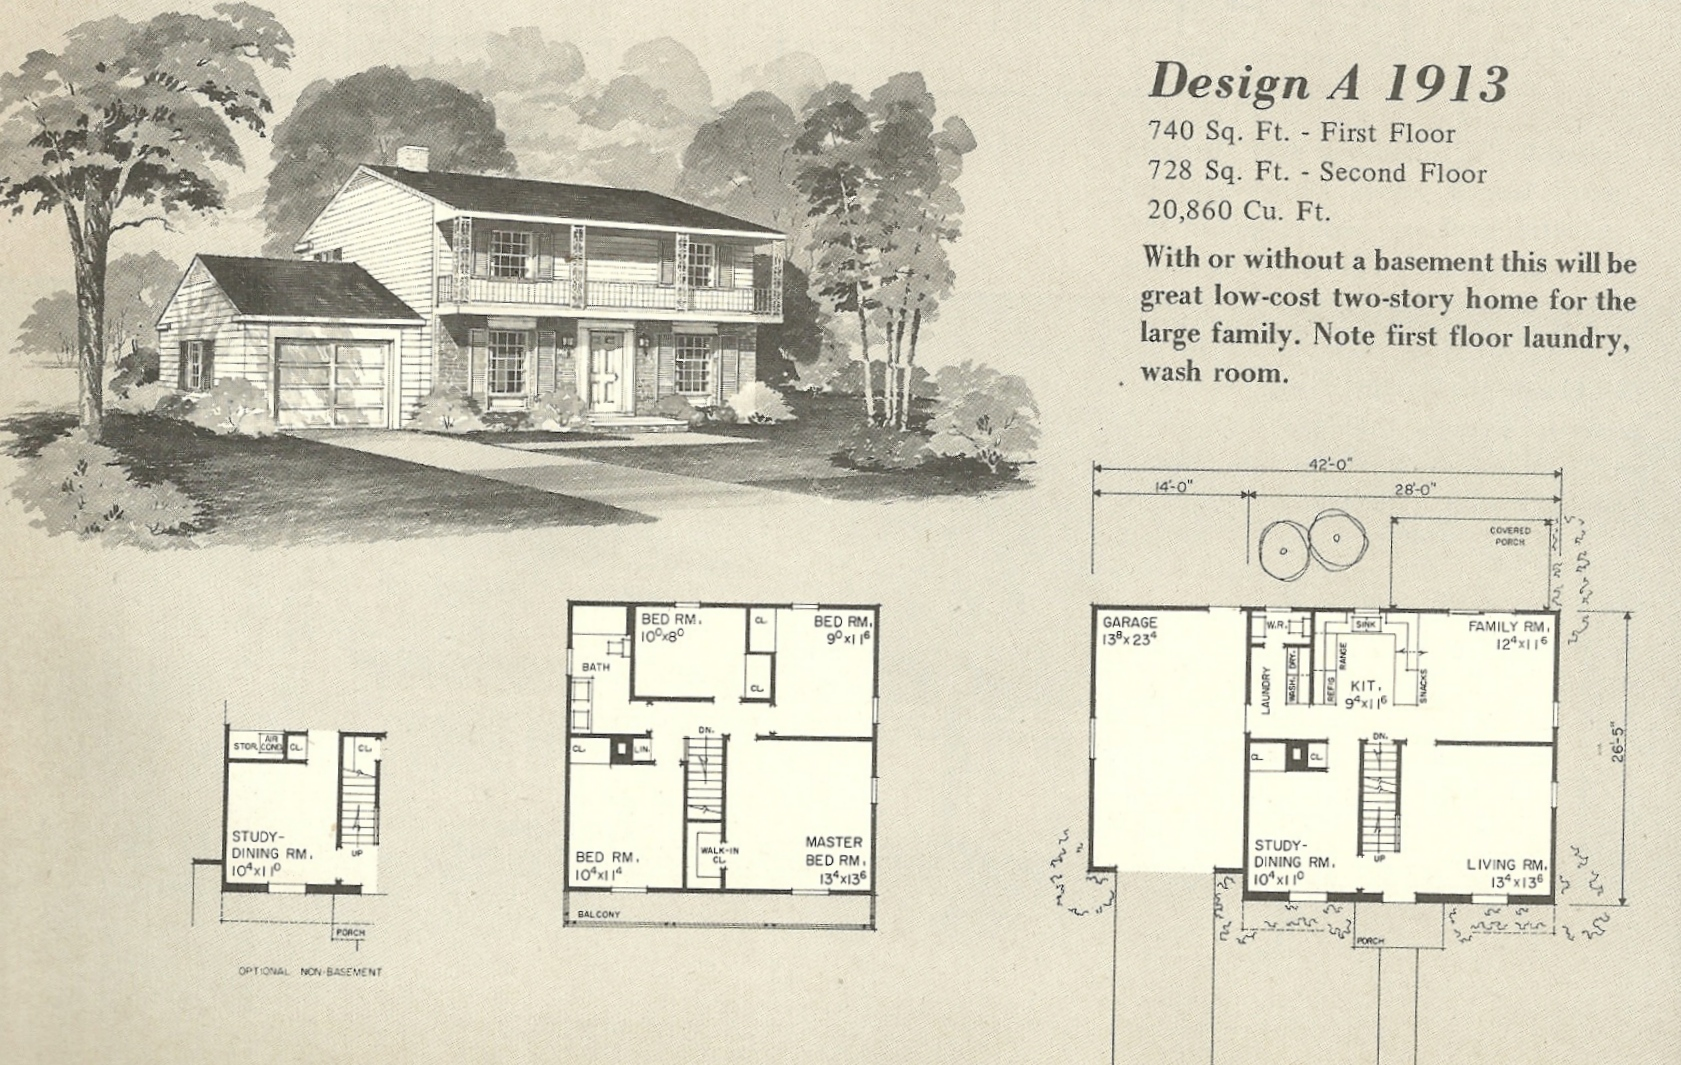 Vintage house plans 1913 antique alter ego - Retro home design ...